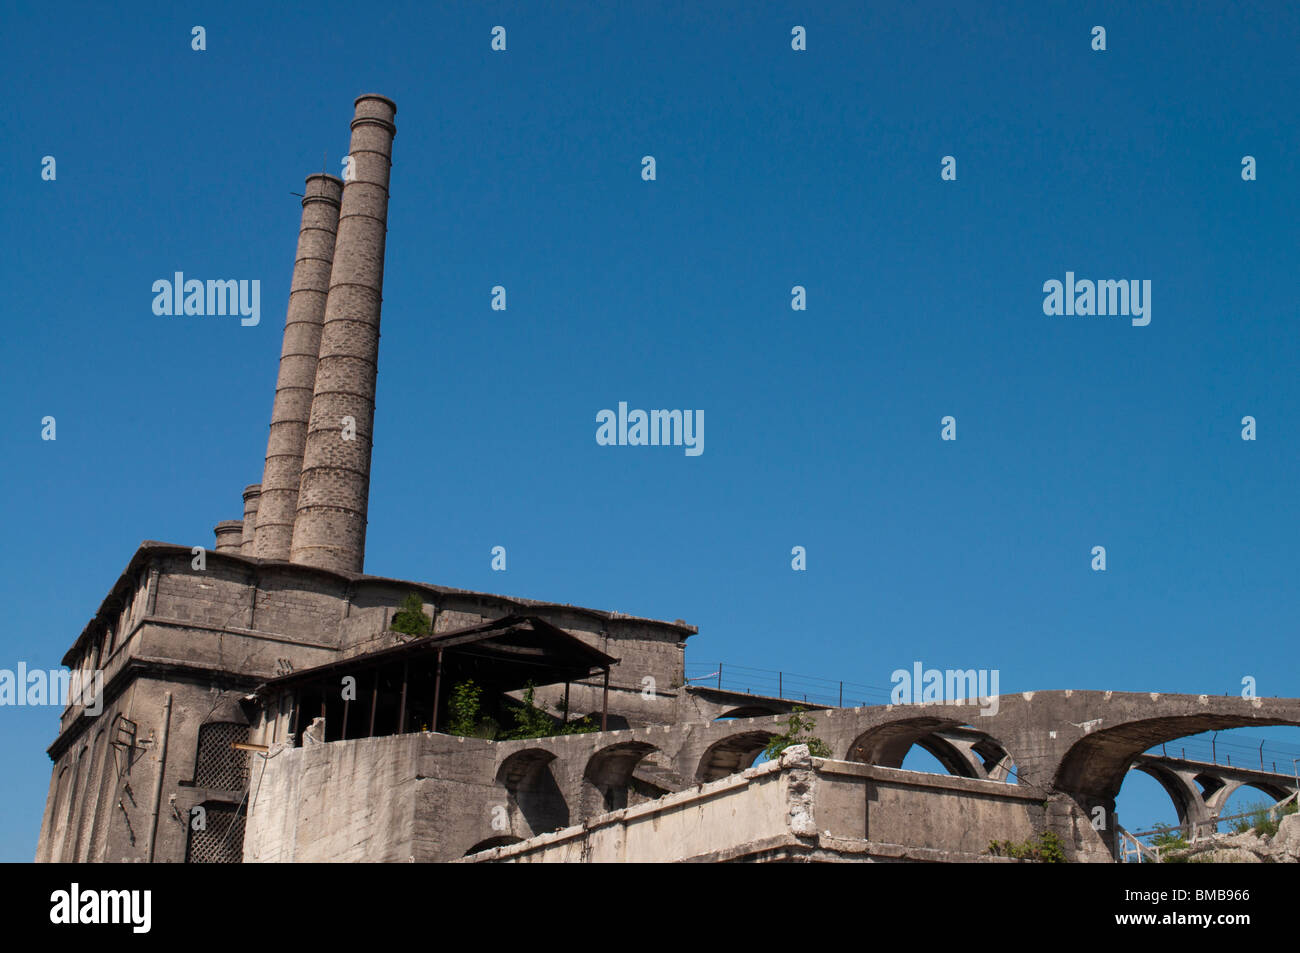 Old abandoned industrial Factory landscape, Bergamo Italy - Stock Image